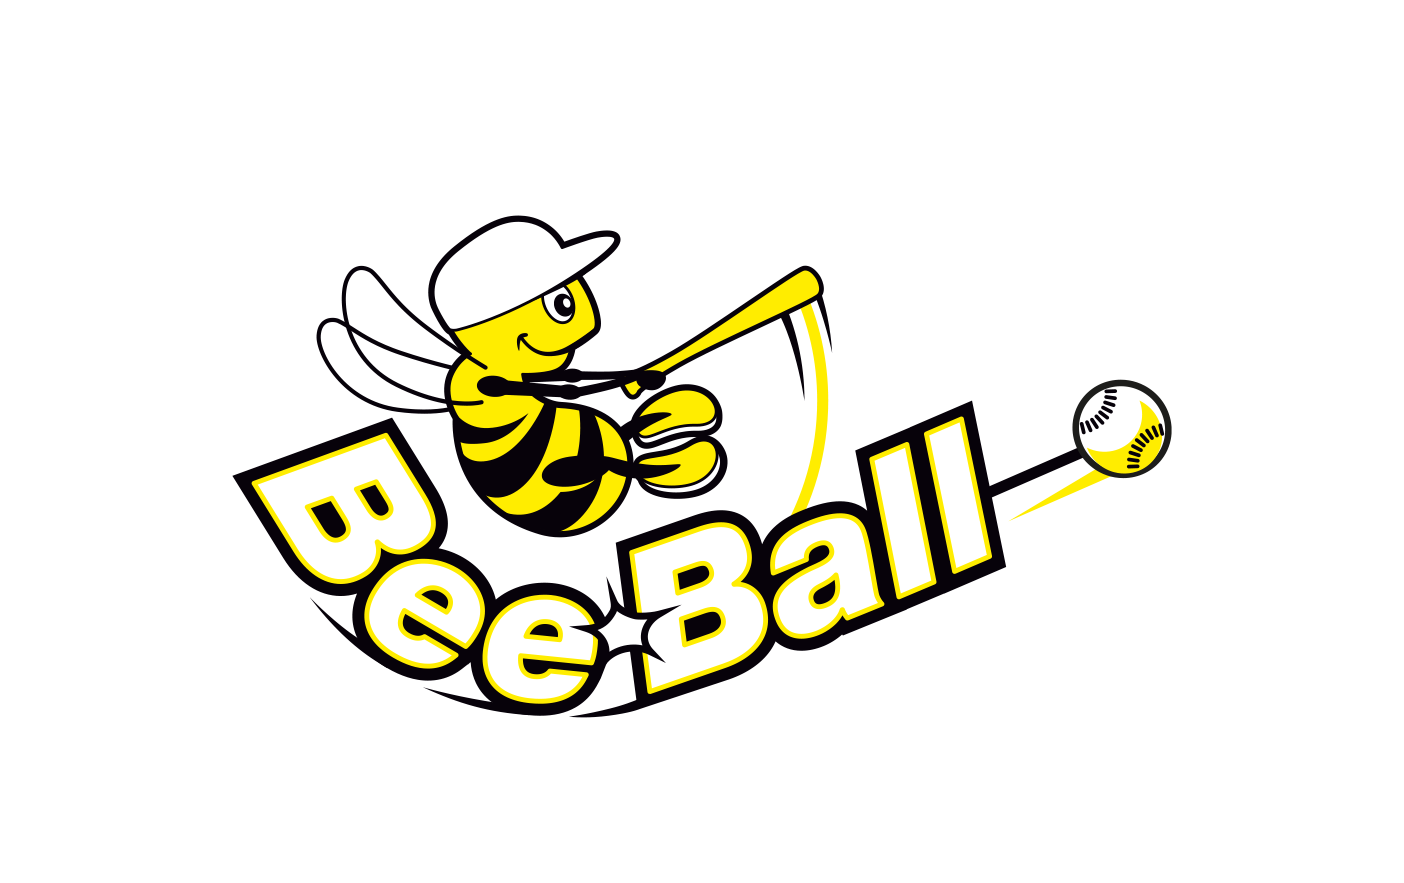 Beeball day